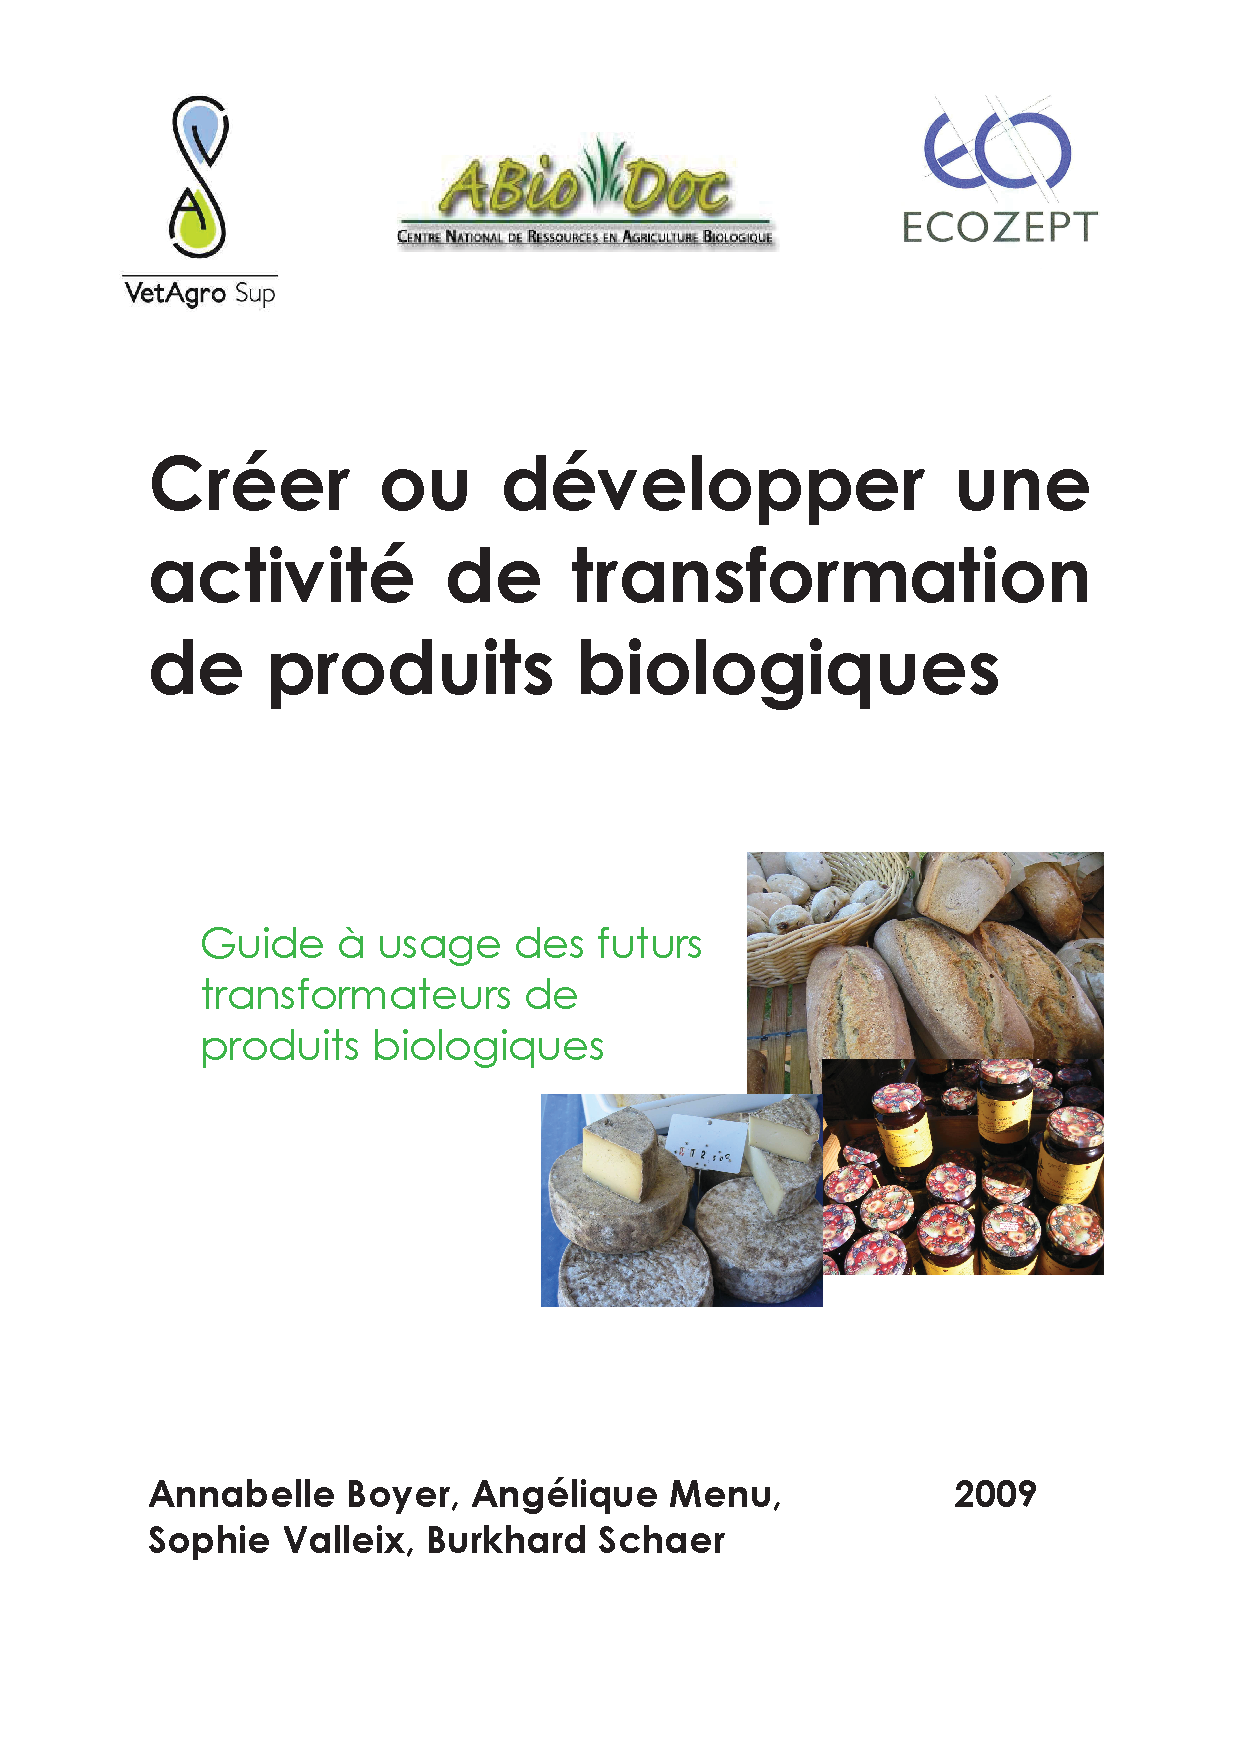 2009_creer_ou_developper_une_activite_de_transformation_de_produits_bio.png